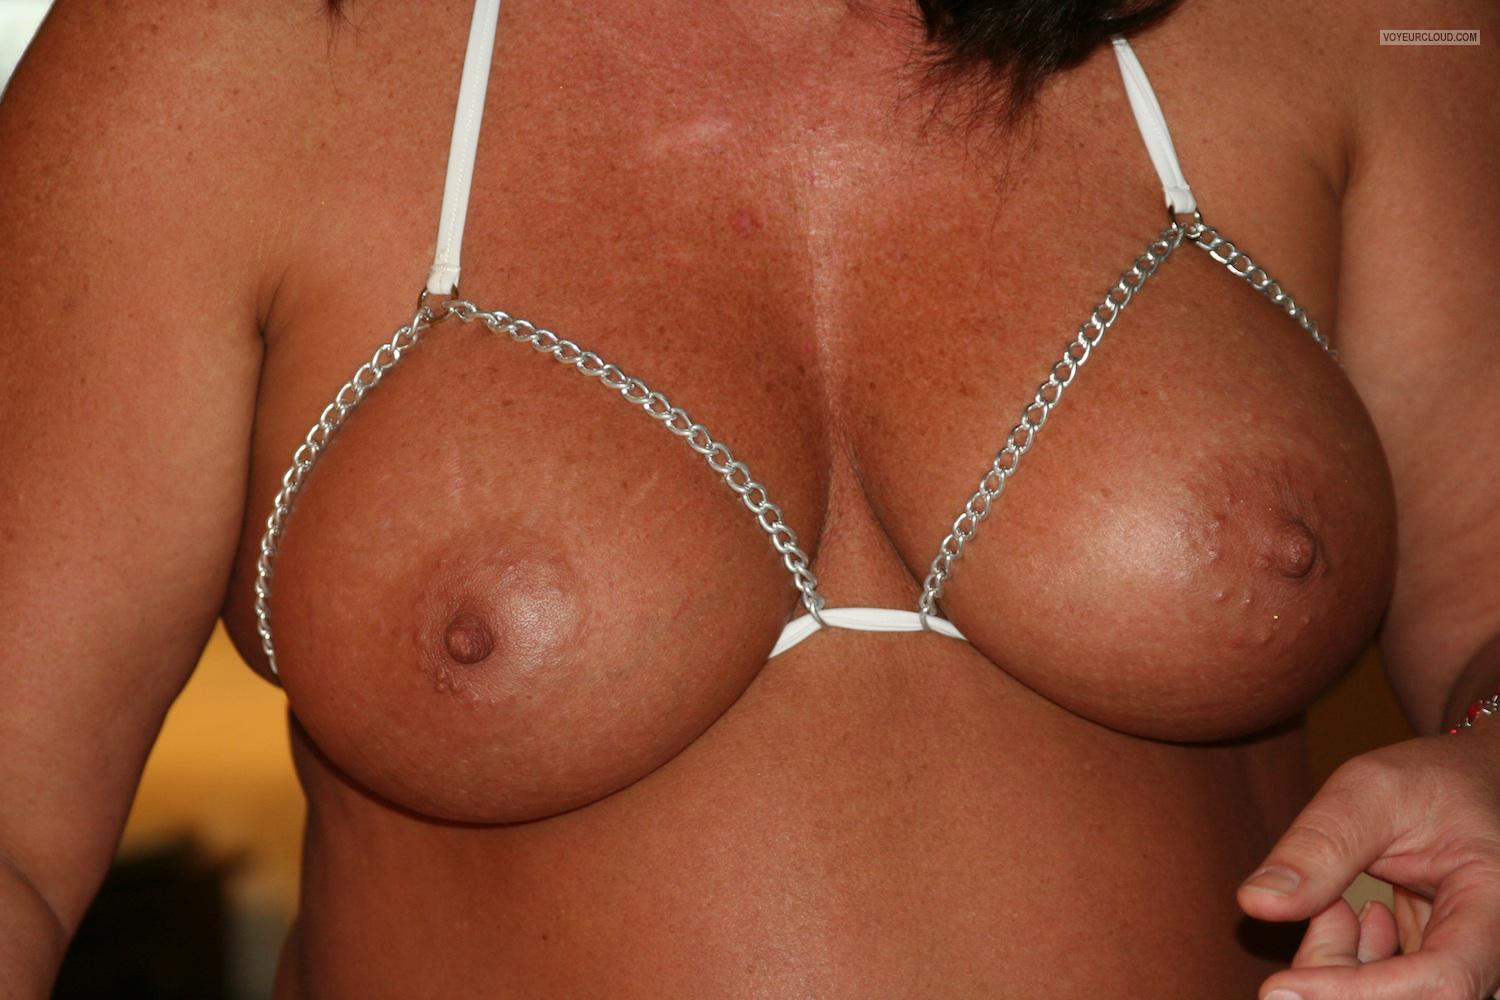 Medium Tits Of My Wife AngelEyes